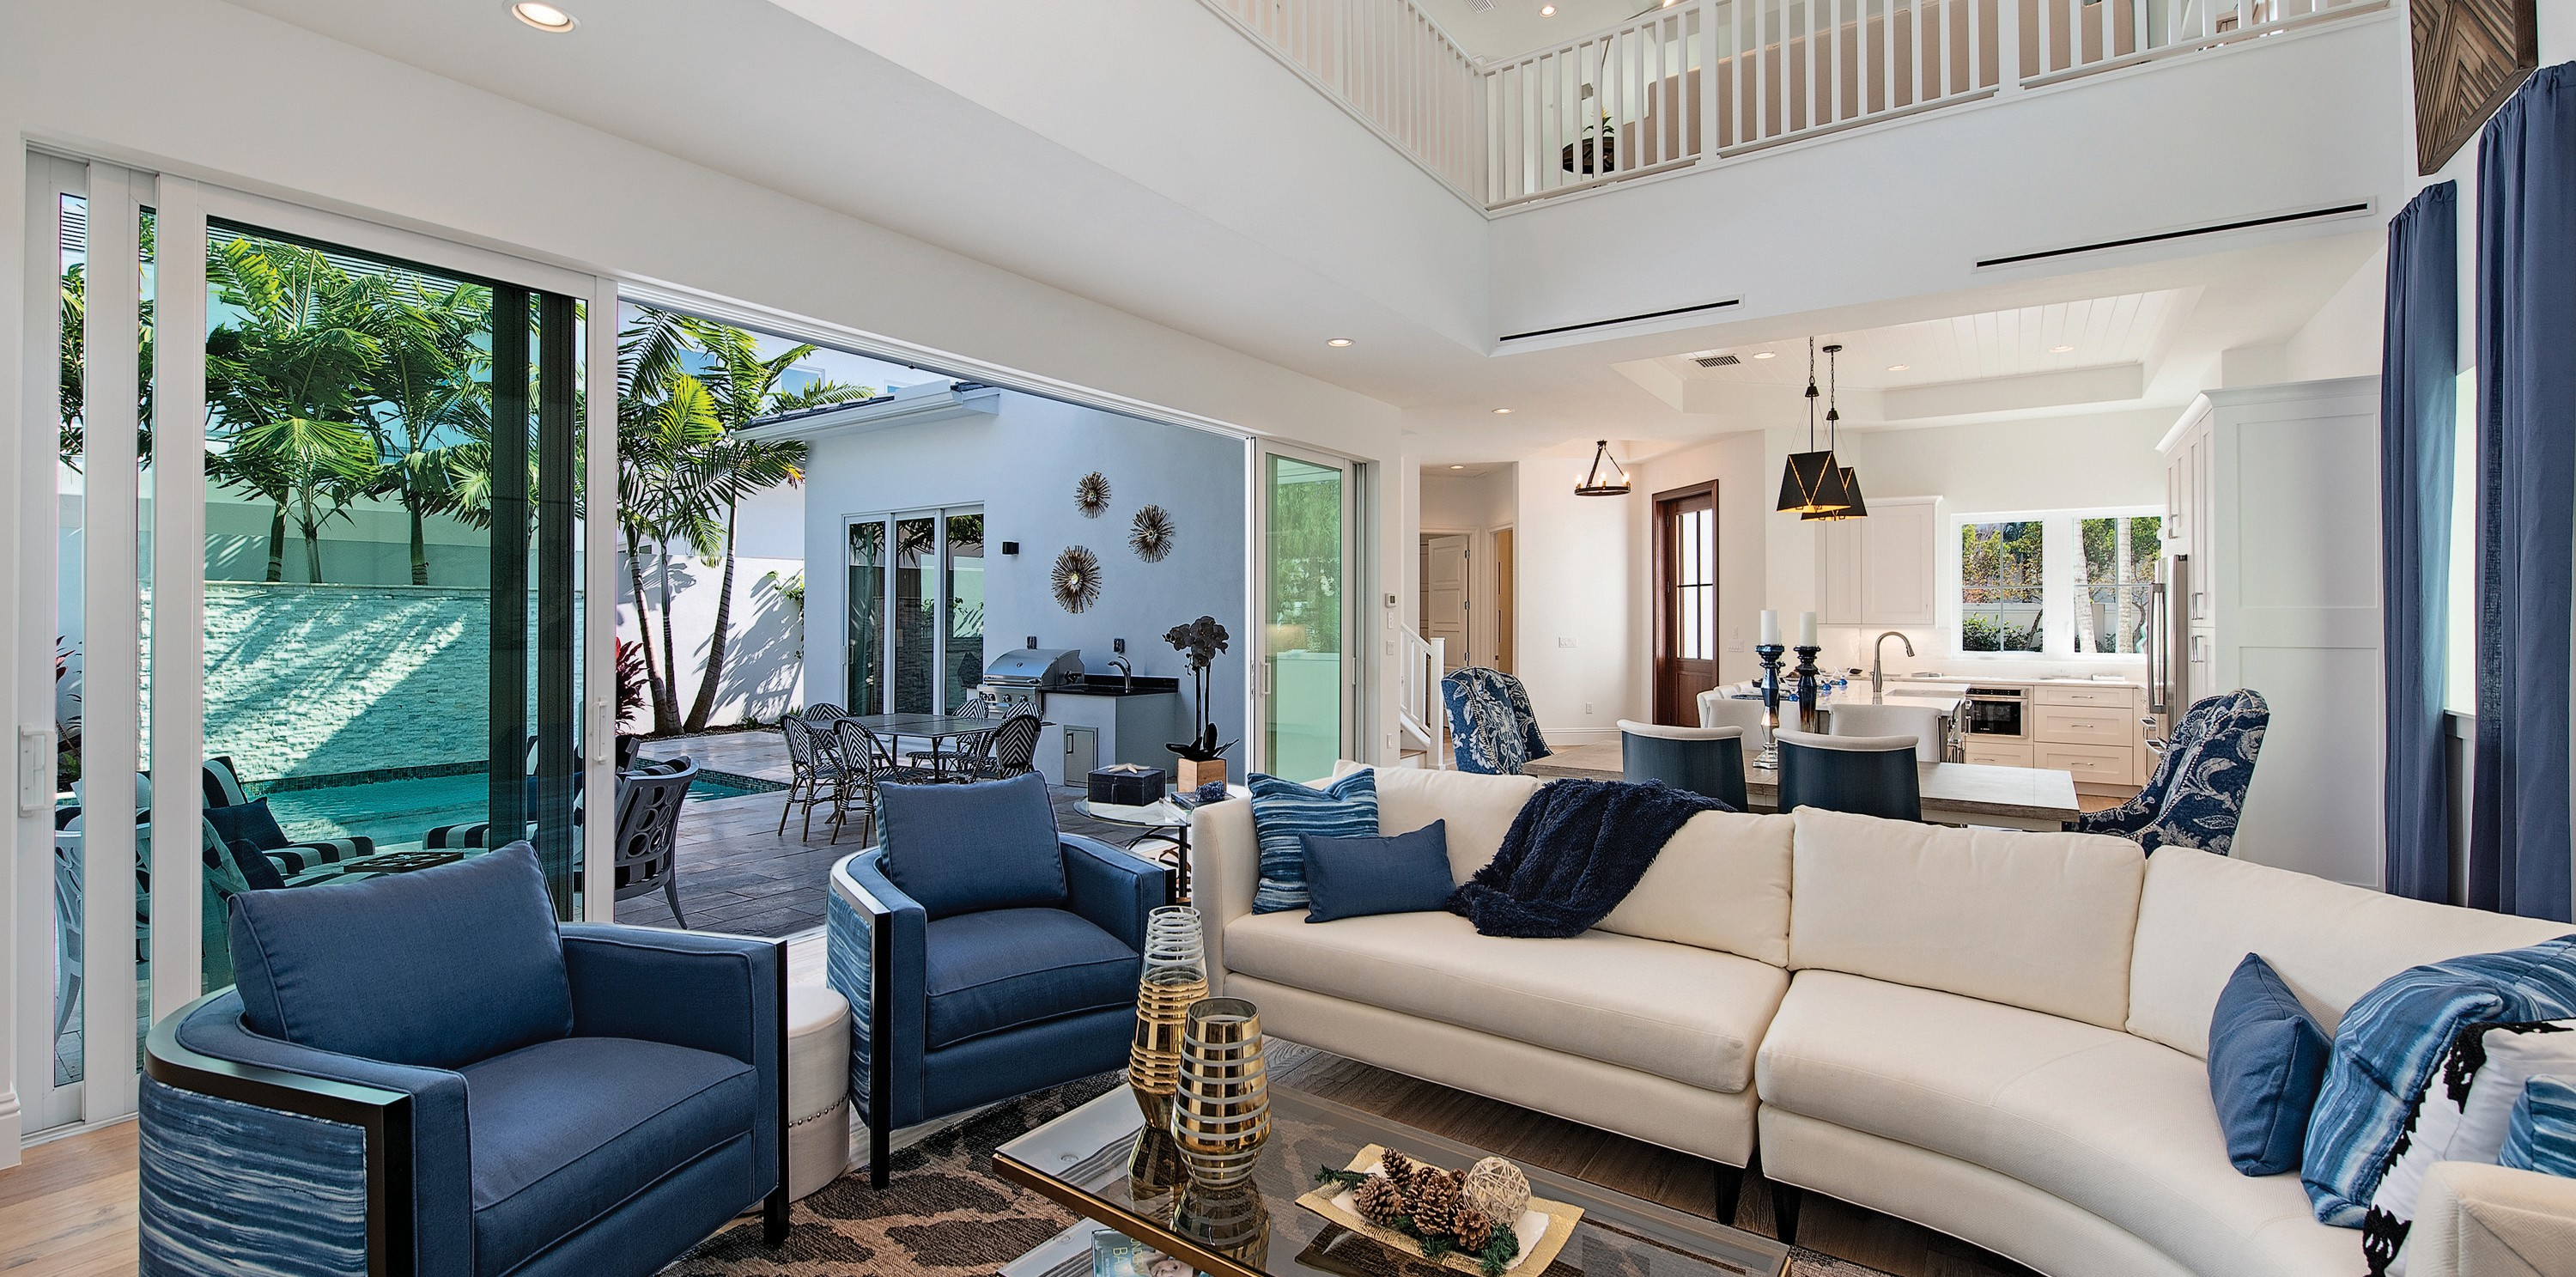 High Quality Experience The Ease Of Indoor Outdoor Living In Le Jardin, The Newest Luxury  Model In Residences At Mercato. Developed By The Lutgert Companies, ...